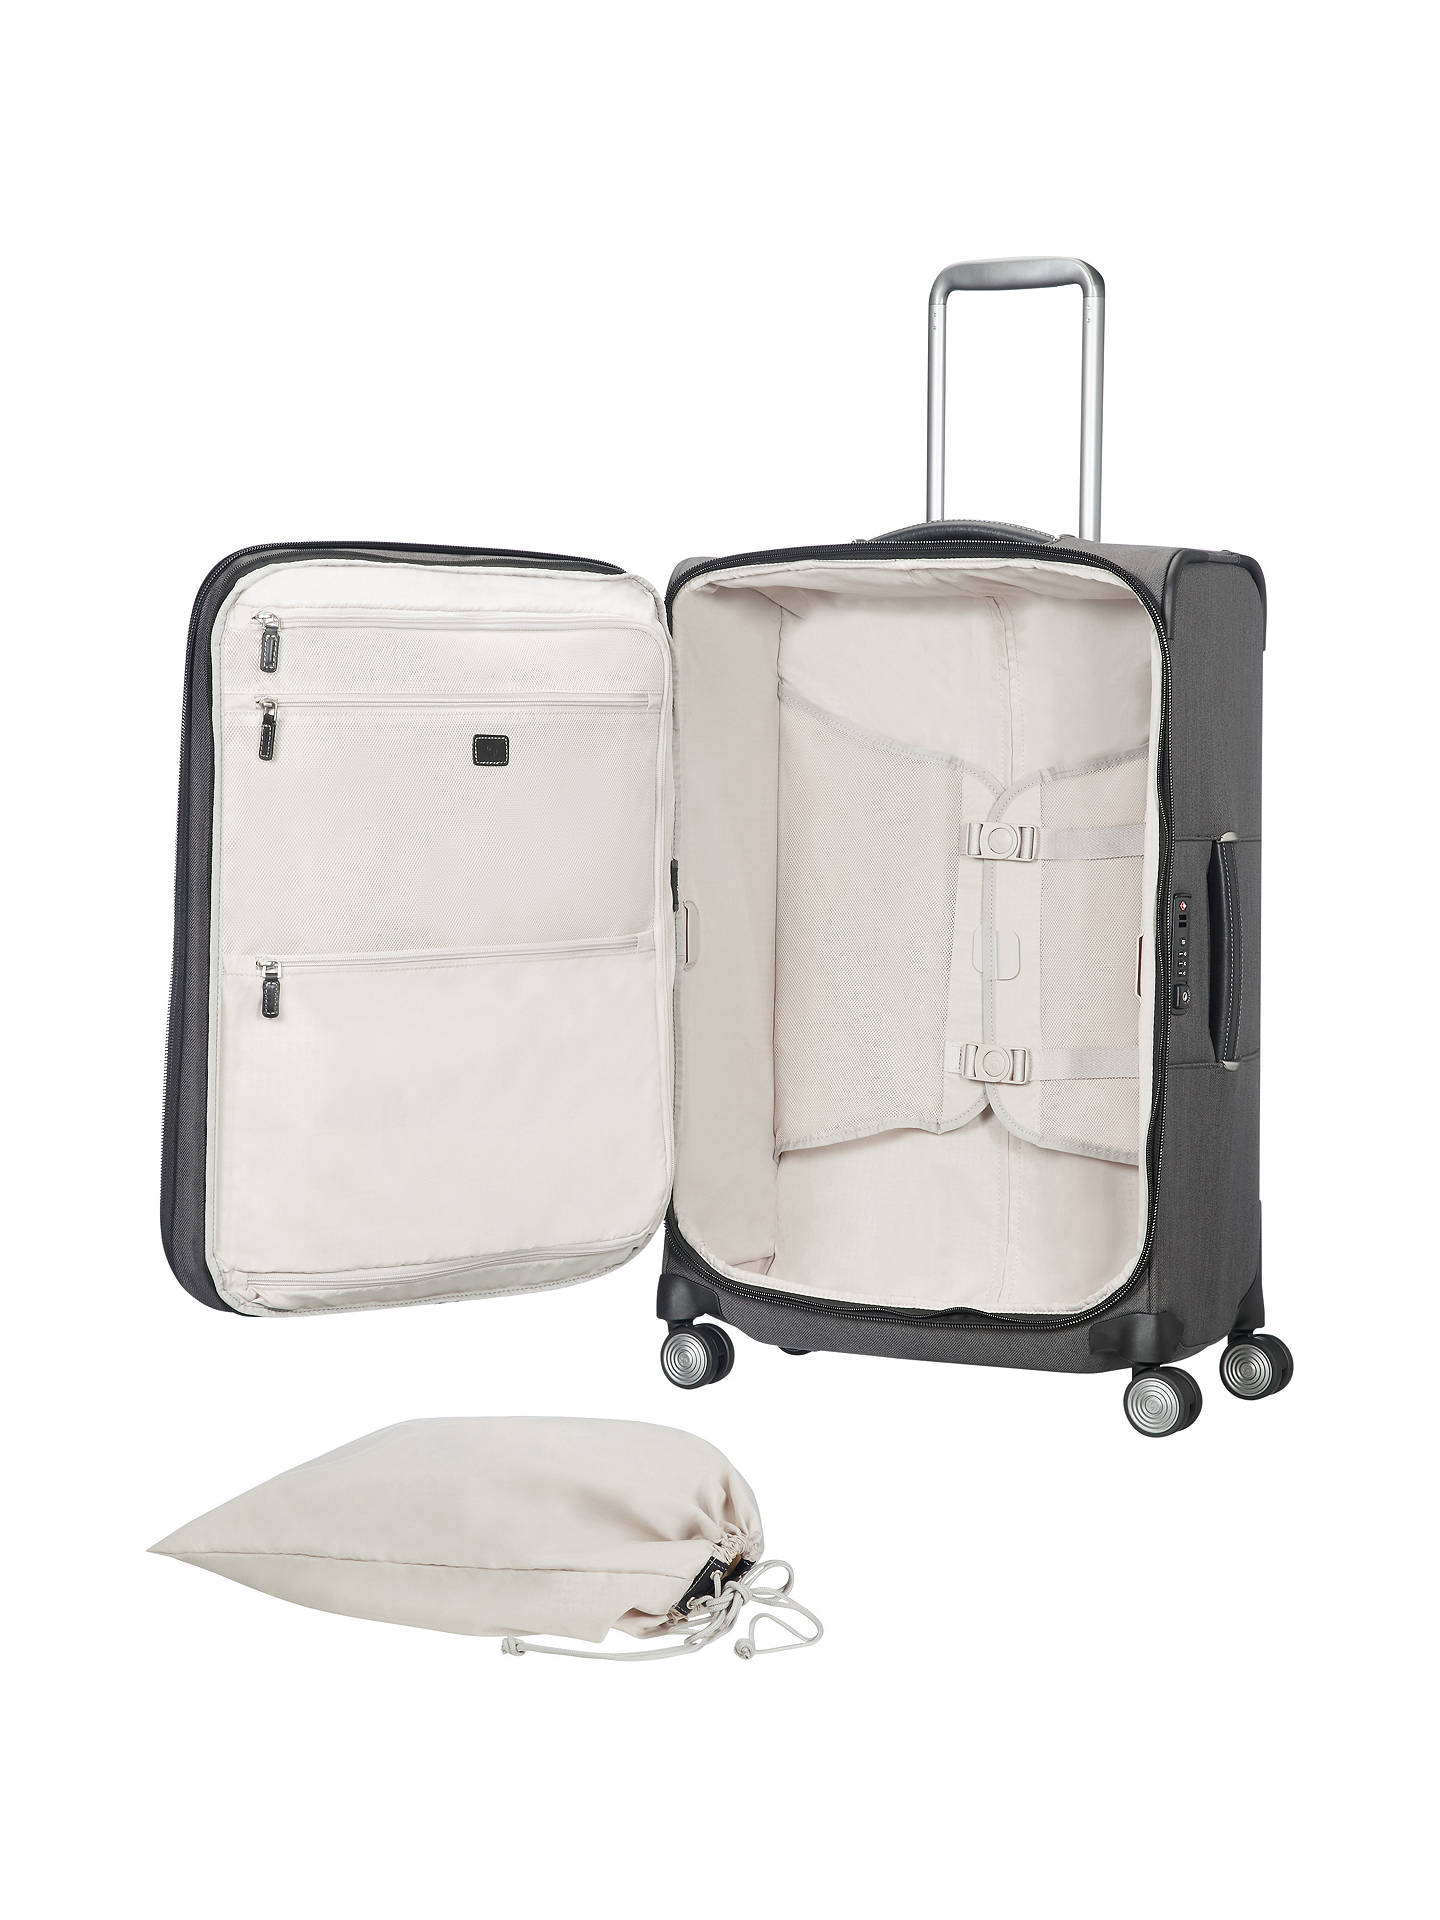 Buy Samsonite Lite-DLX 4-Wheel 79cm Large Suitcase, Grey Eclipse Online at johnlewis.com